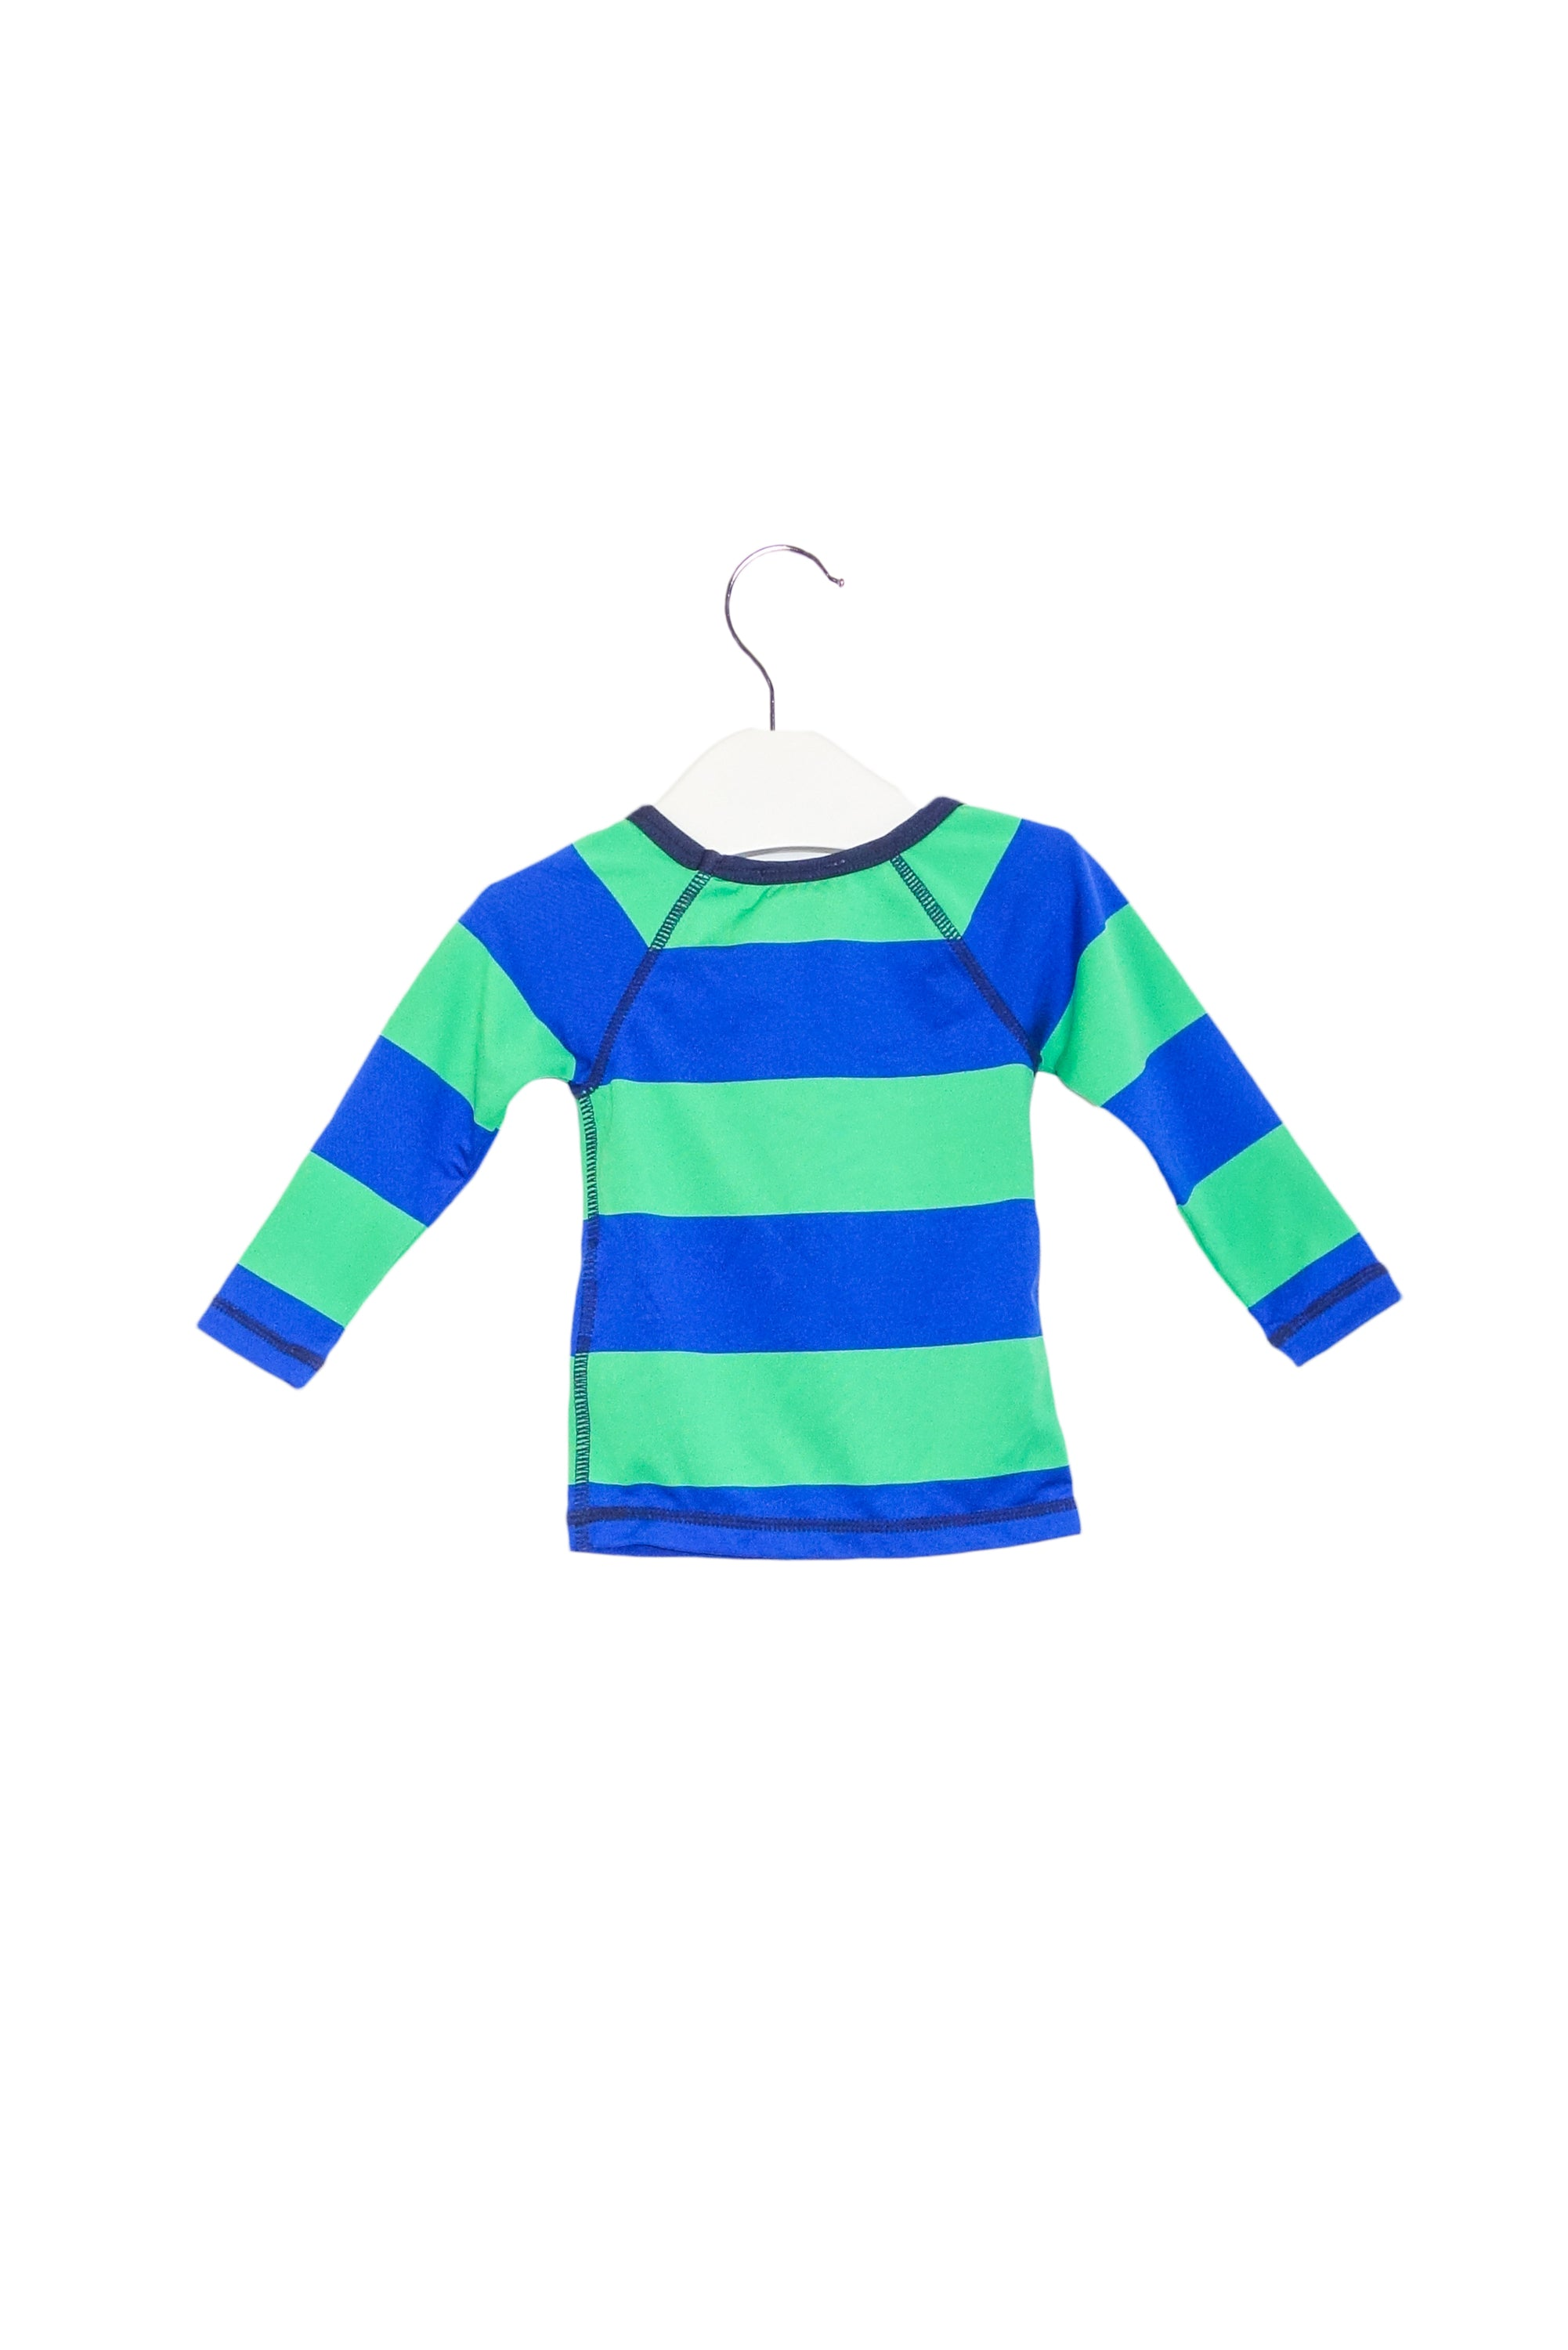 10013567 Polo Ralph Lauren Baby ~ Top 6M at Retykle